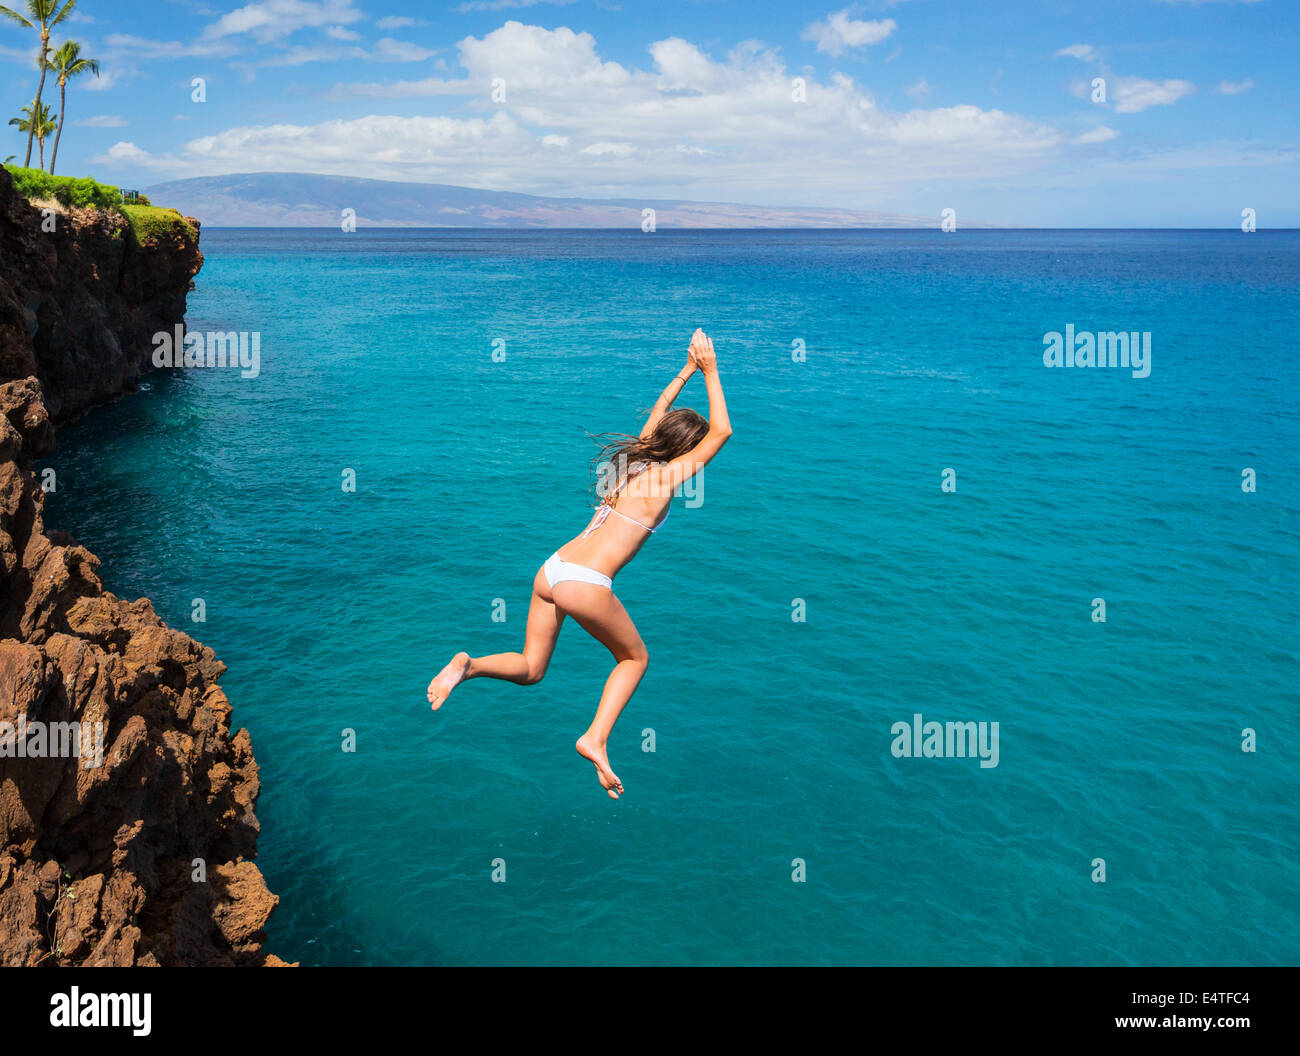 Woman Jumping off cliff dans l'océan. Vie d'été. Photo Stock